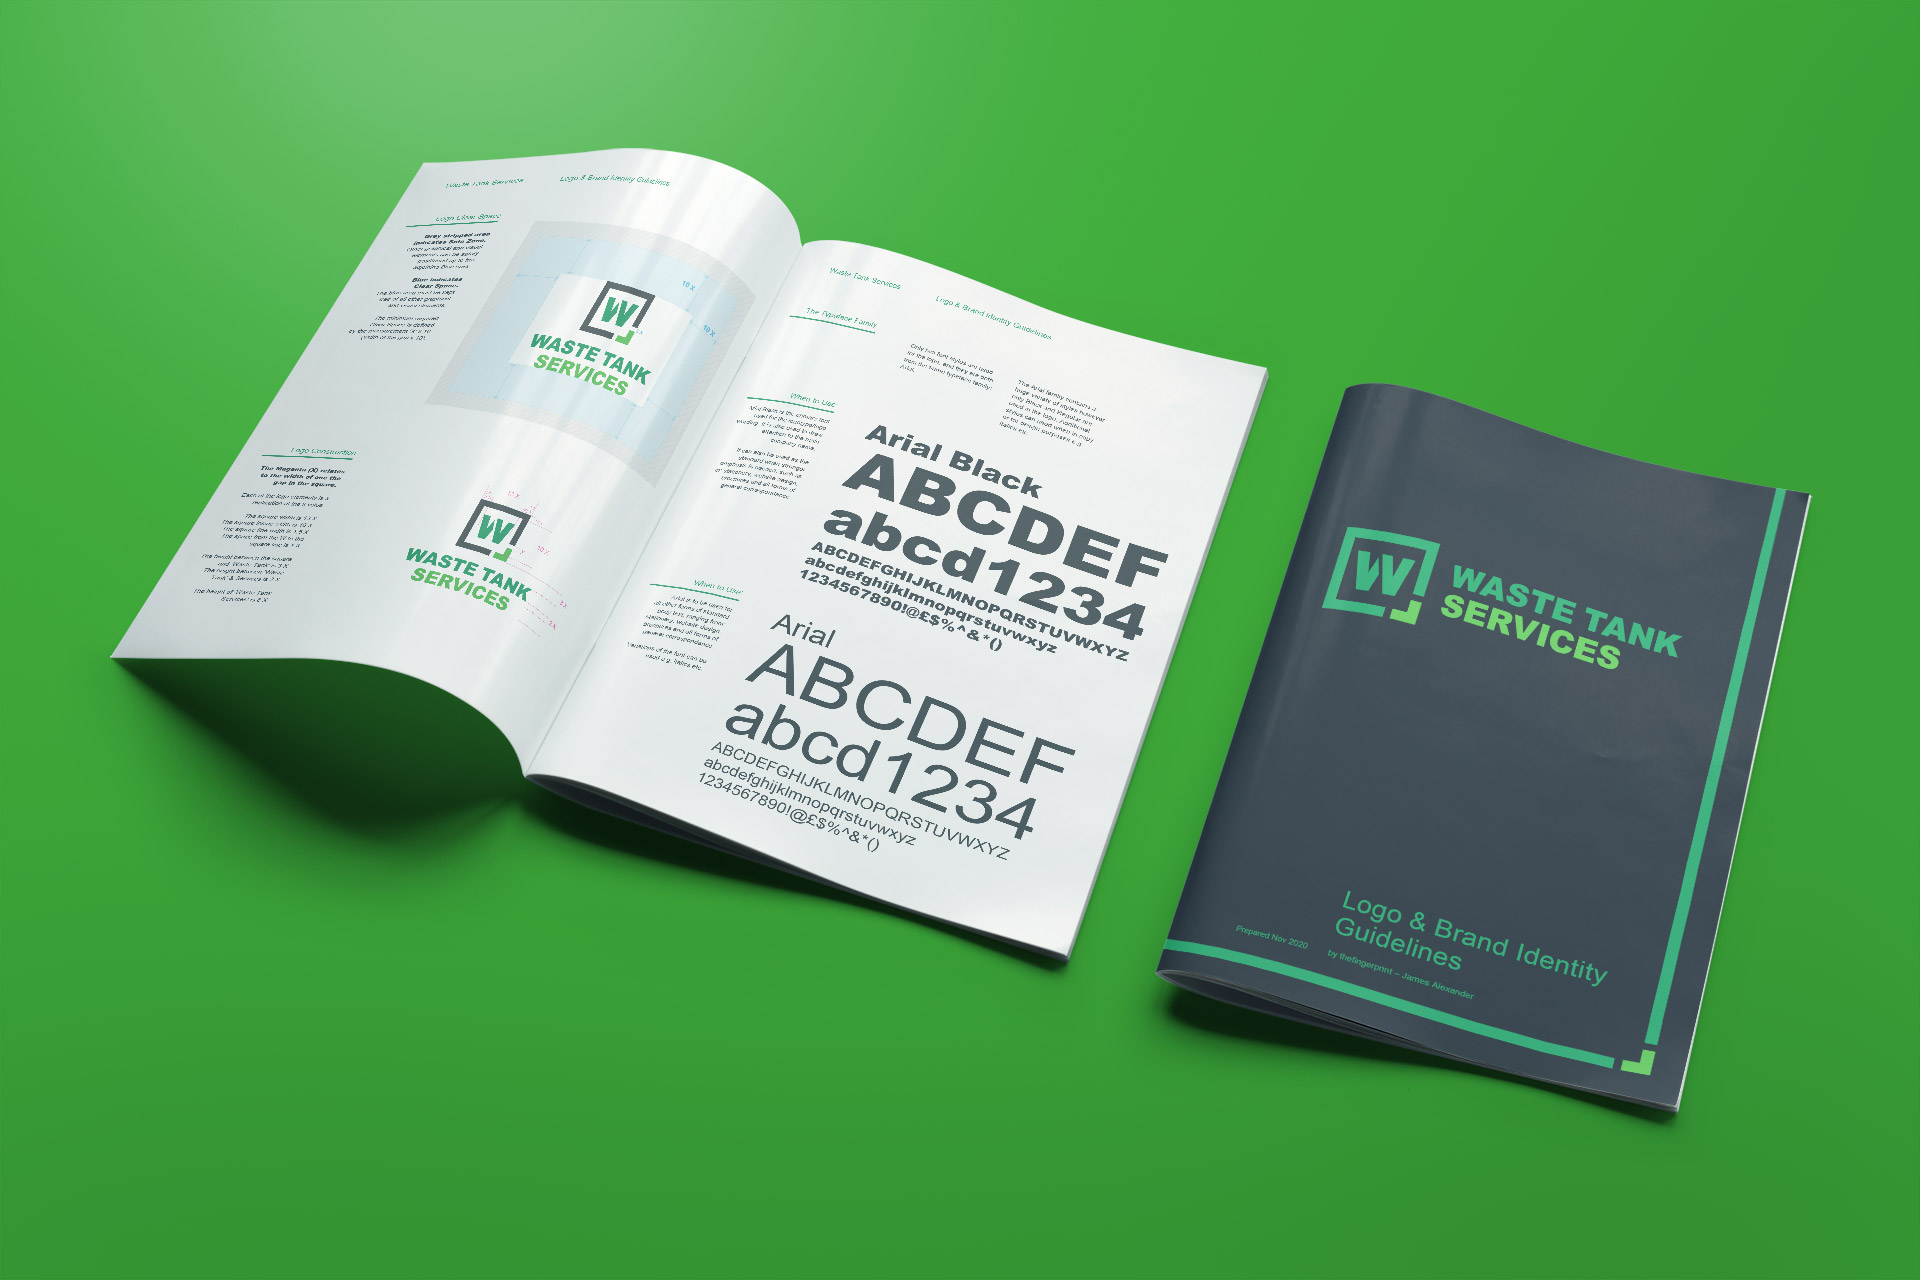 Waste Tank Services Brand Guidelines